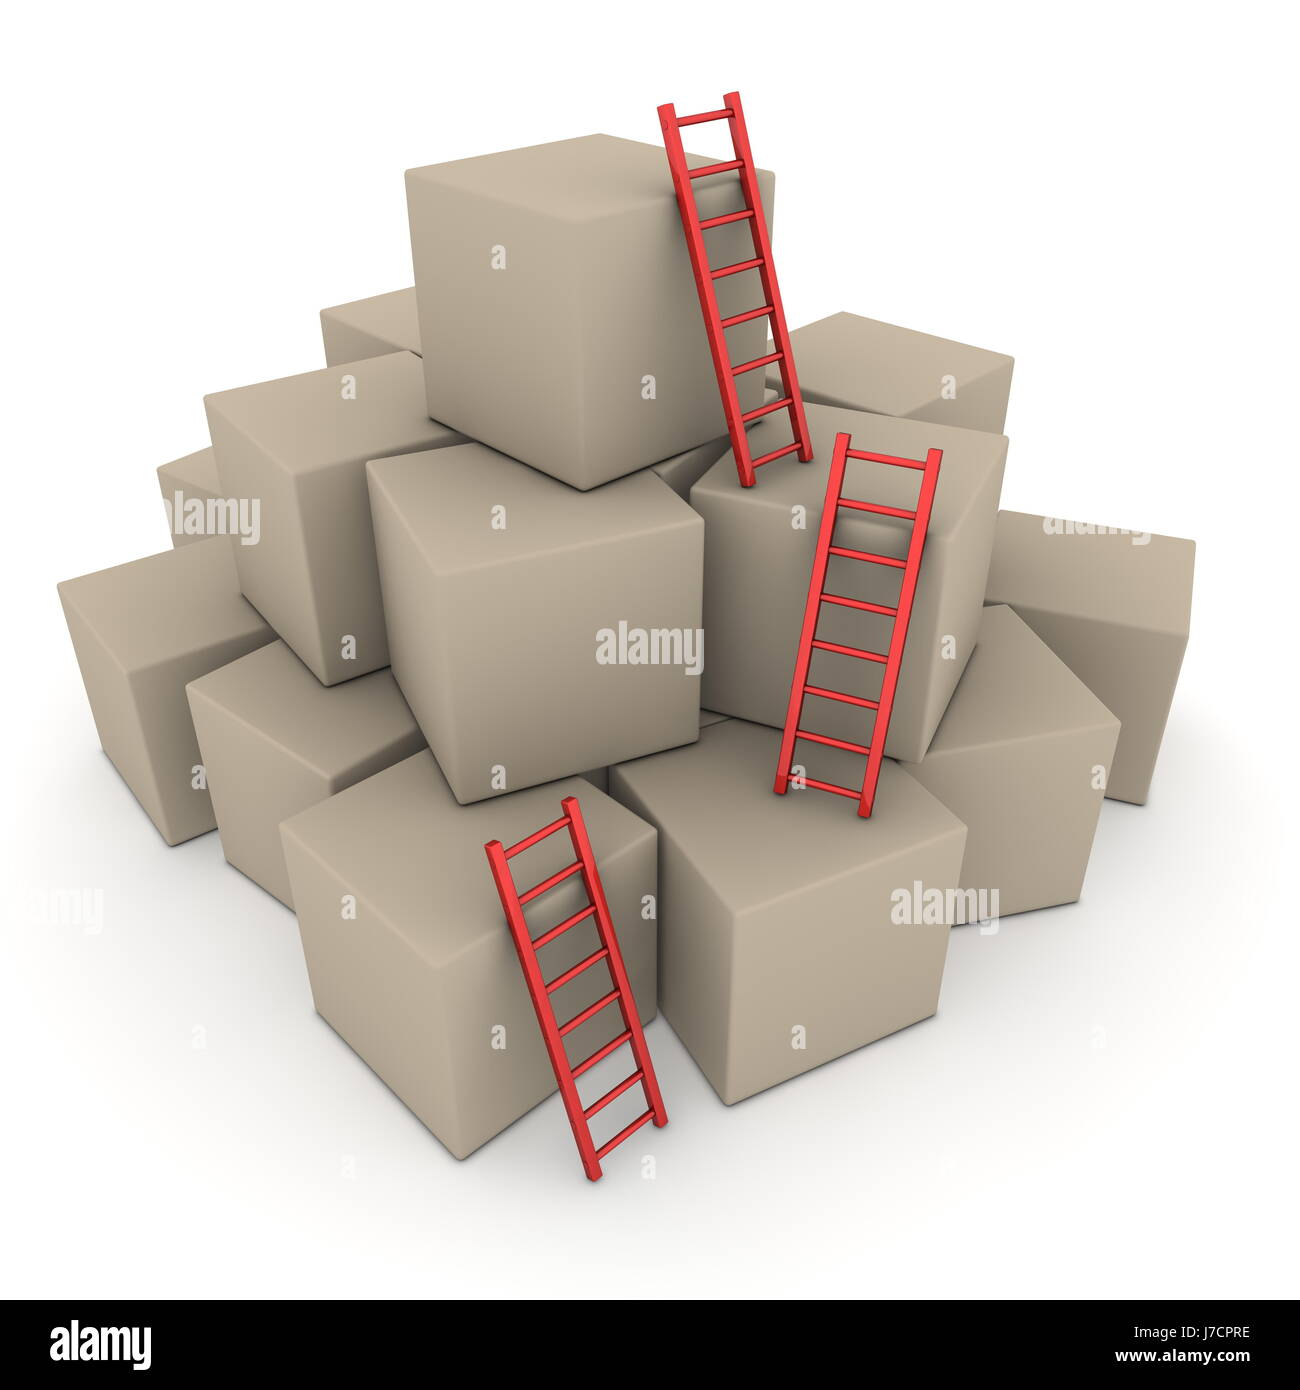 up on growth box boxes blocks ladder cubes red steps stairs object isolated - Stock Image